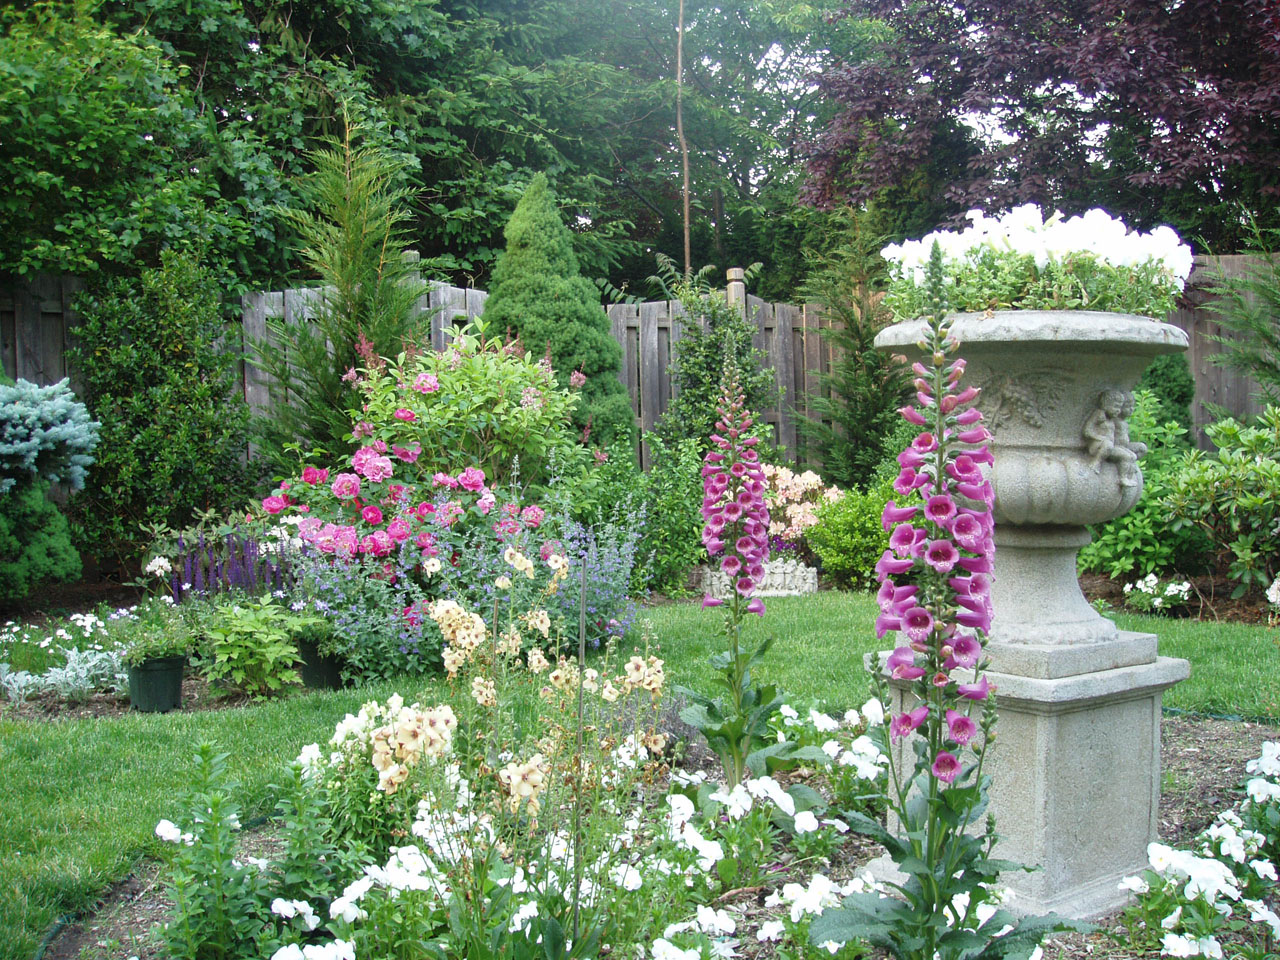 File:An English Garden Designed By Andrea Lynn Fisher